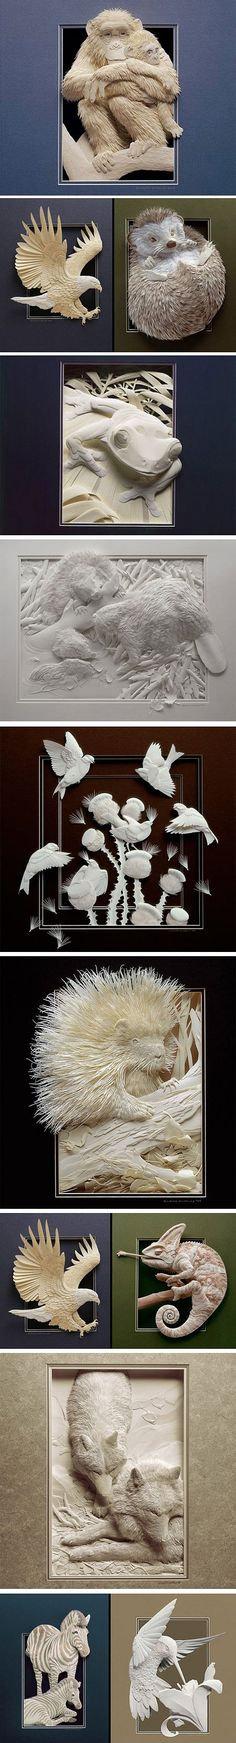 Paper art by Calvin Nicholls - Holy smokes, this guy does 3D paper art.... Beautiful!